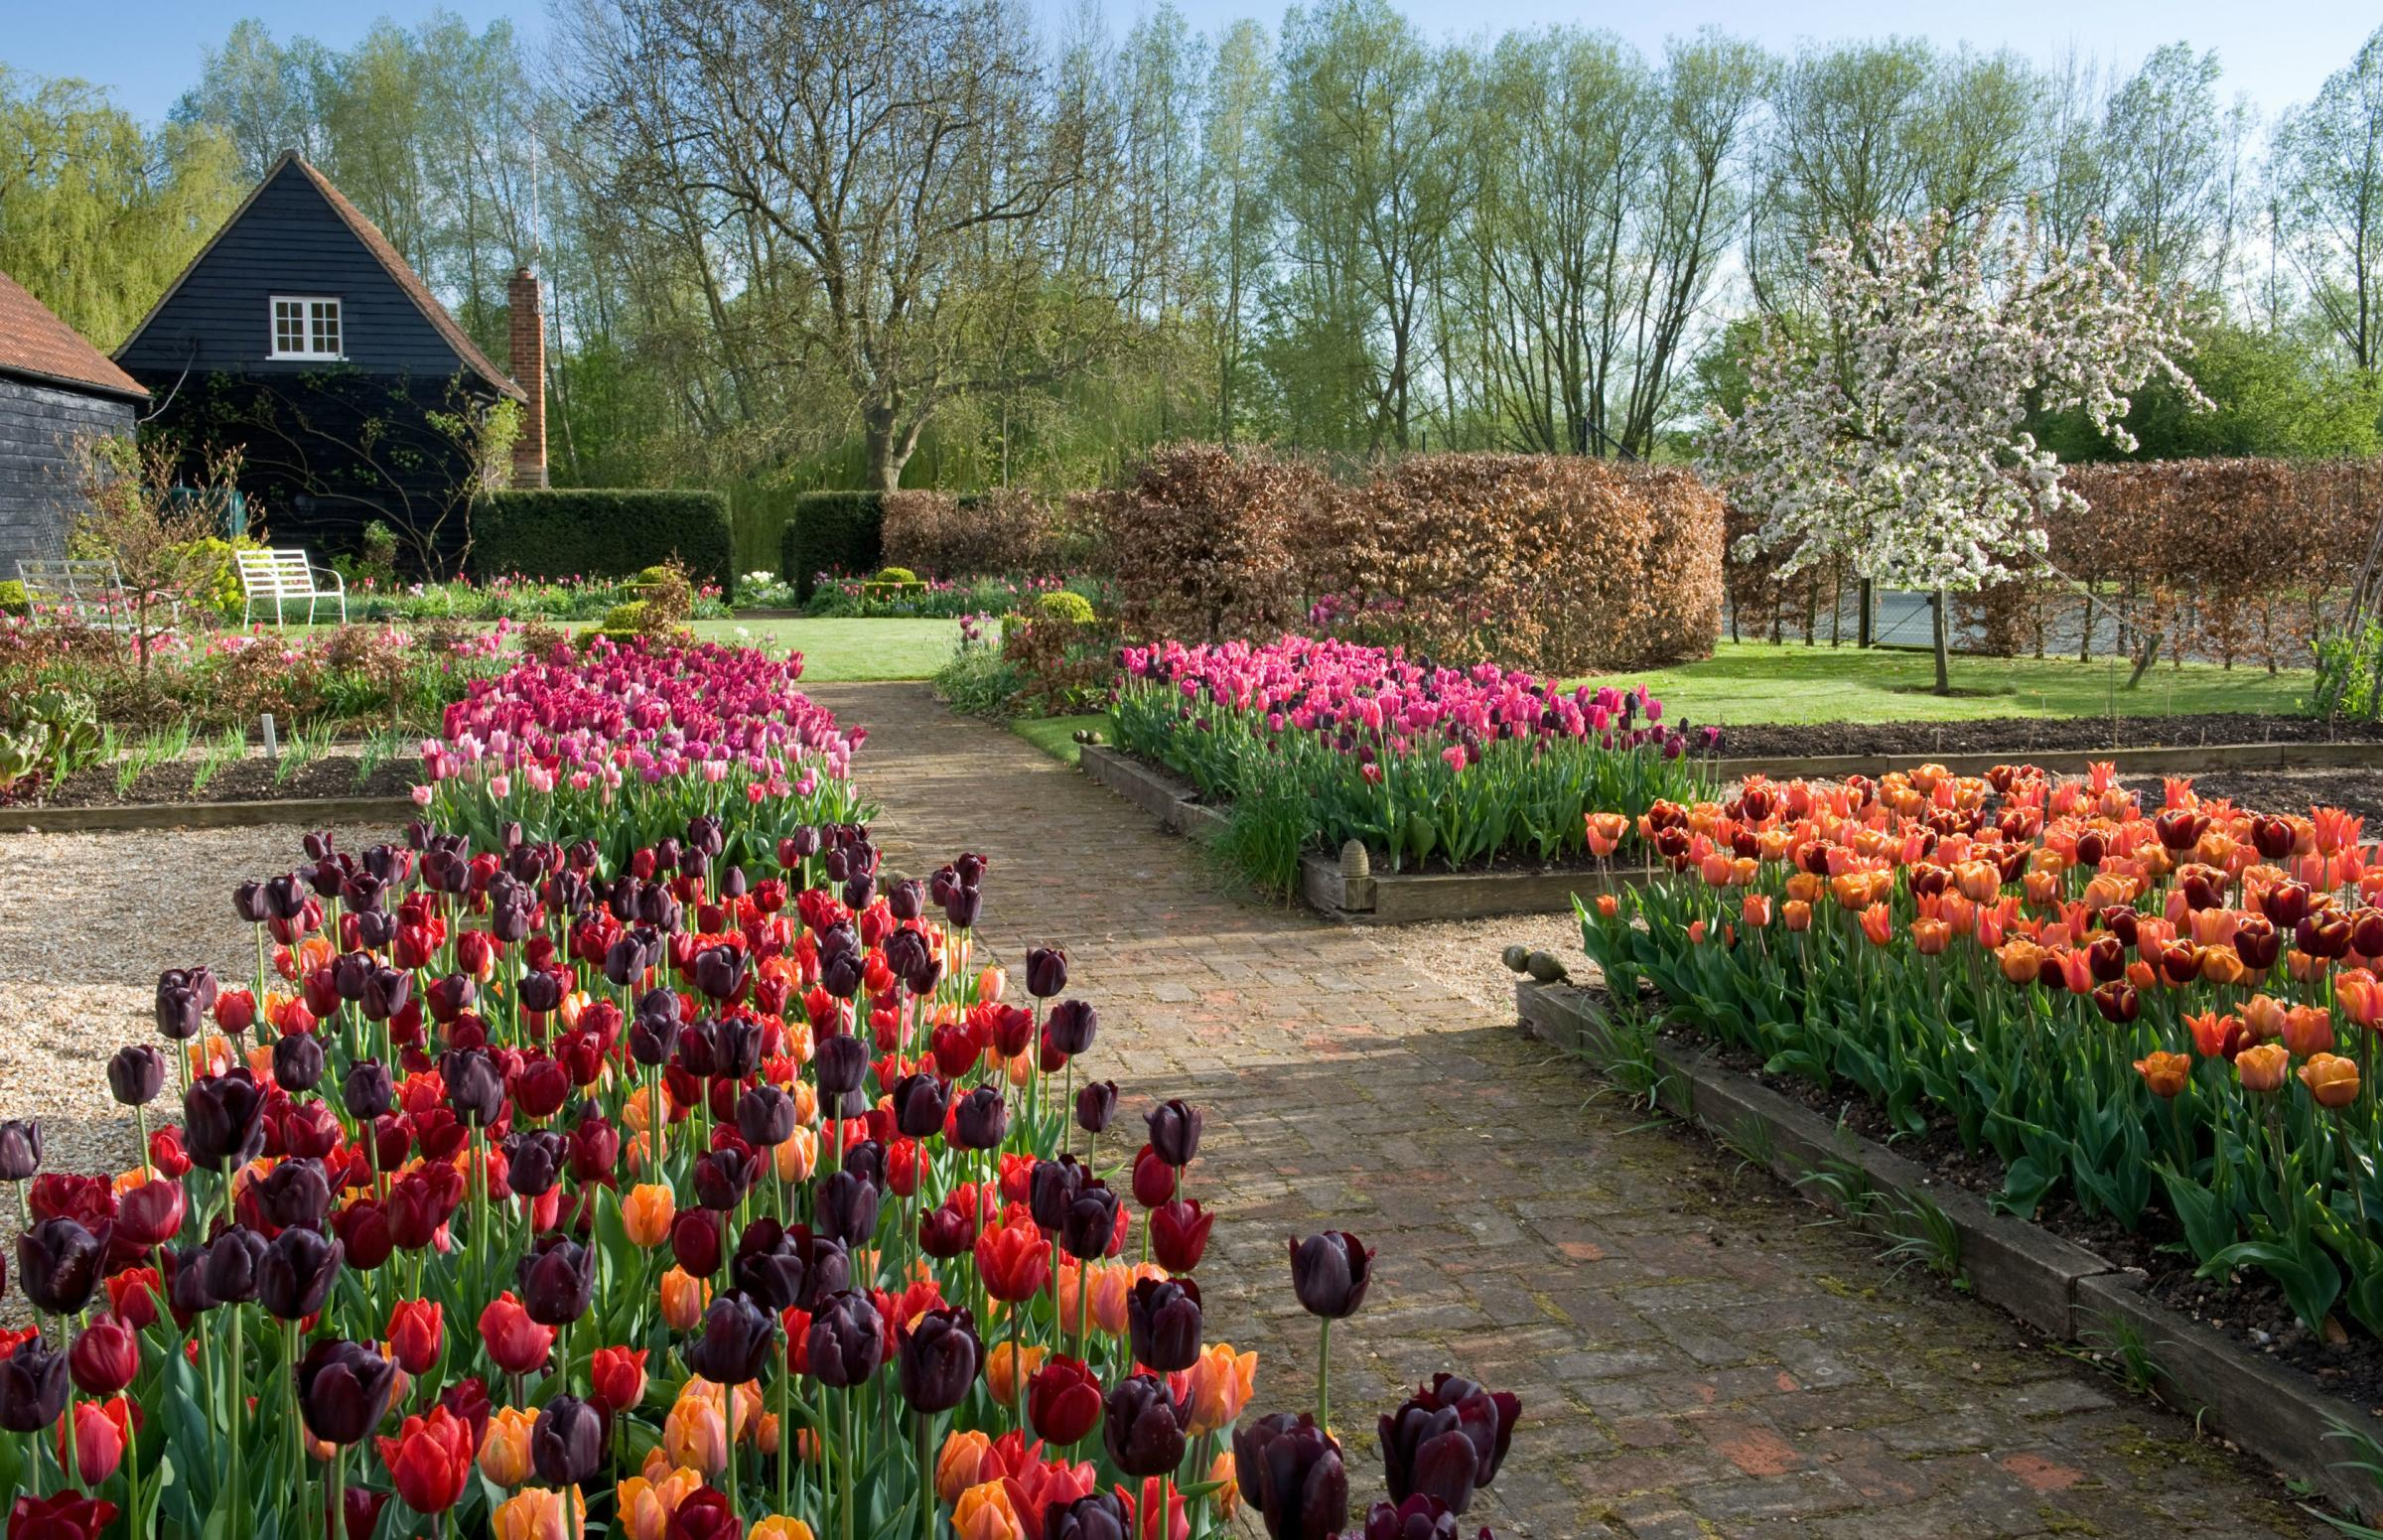 Photo of tulip borders at Ulting Wick, Essex.PIc: Marcus Harpur/PA